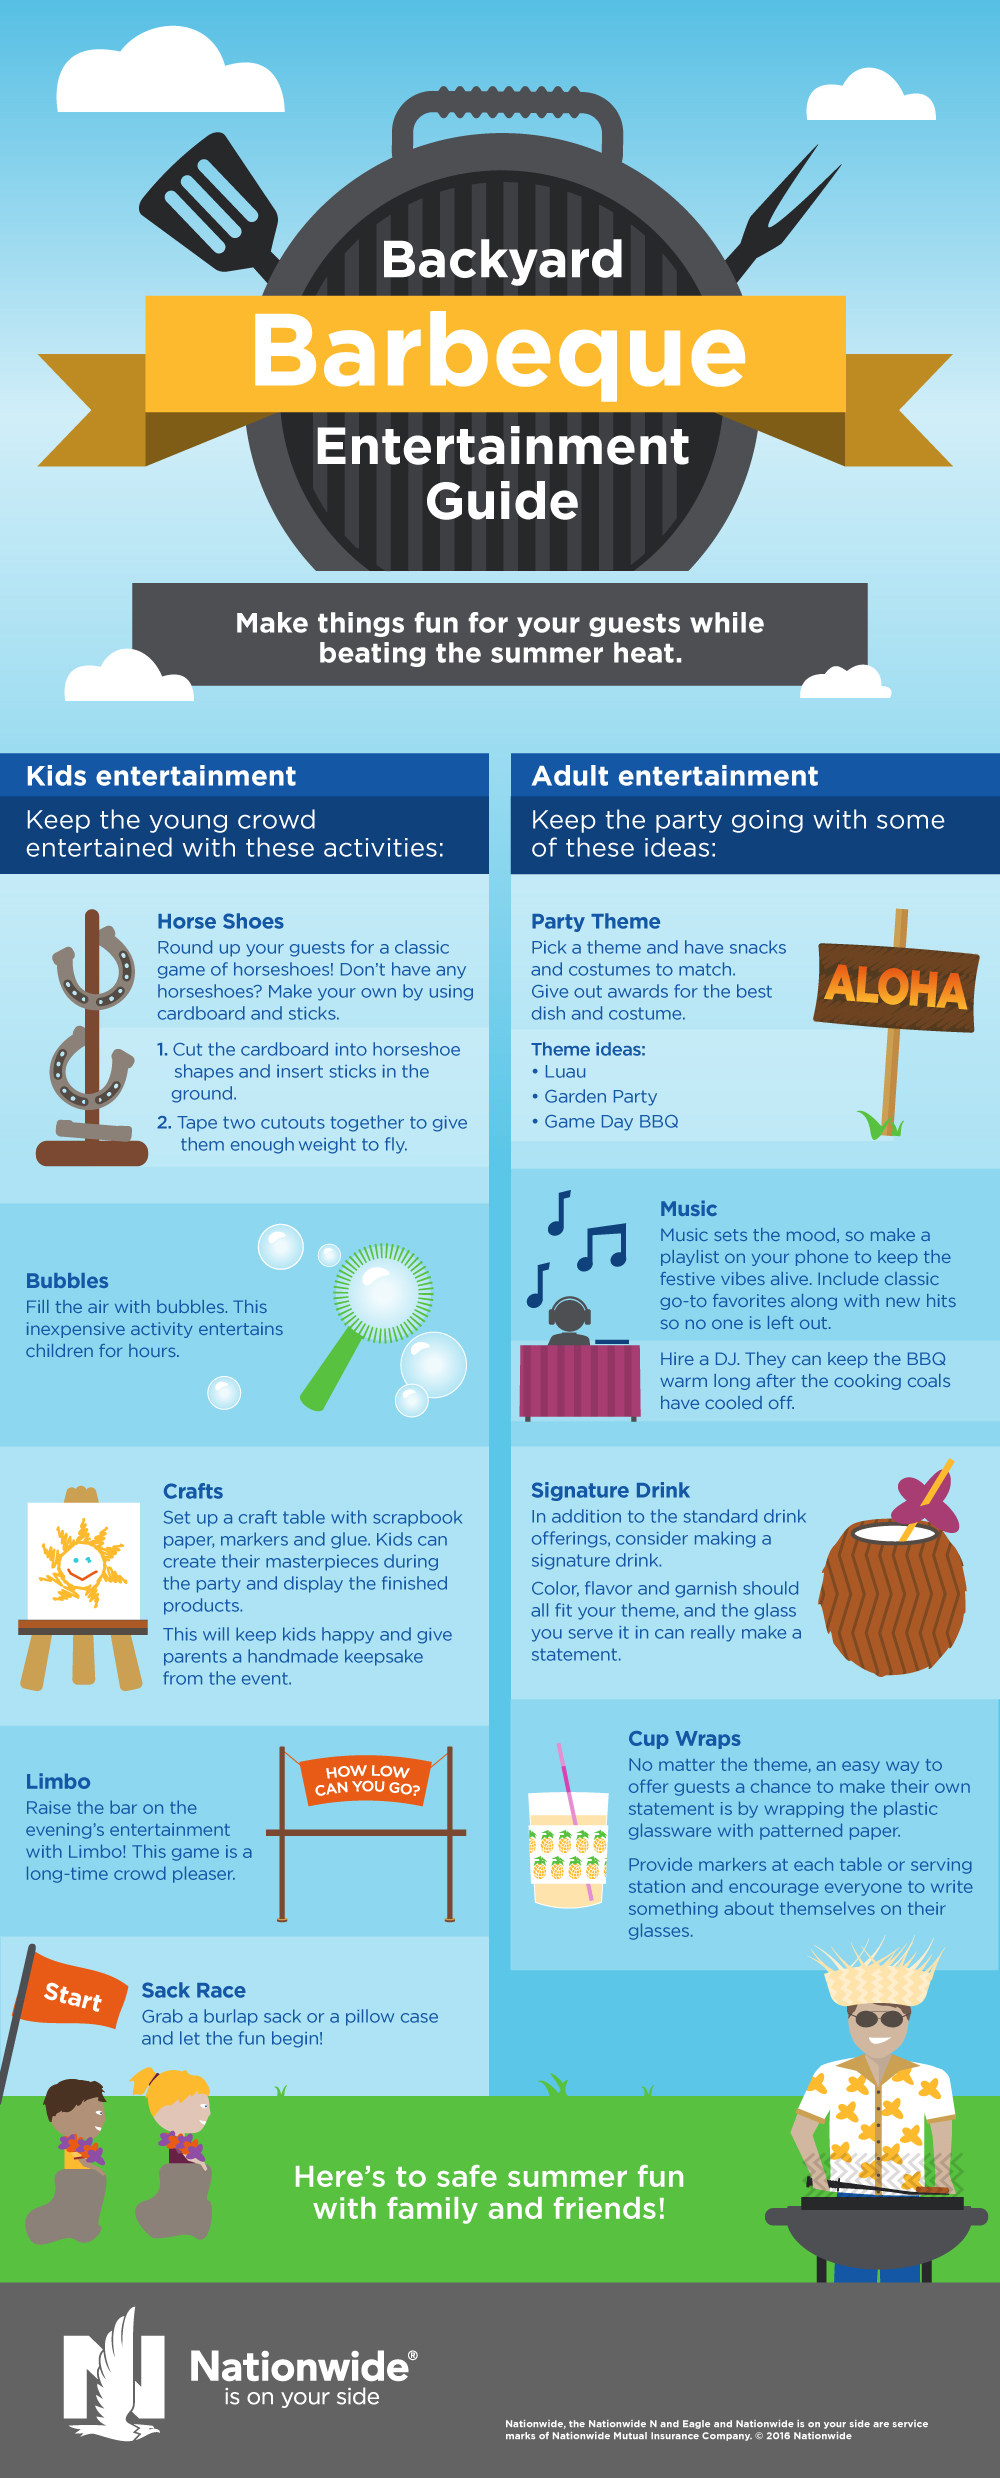 Backyard BBQ Party Ideas [Infographic]